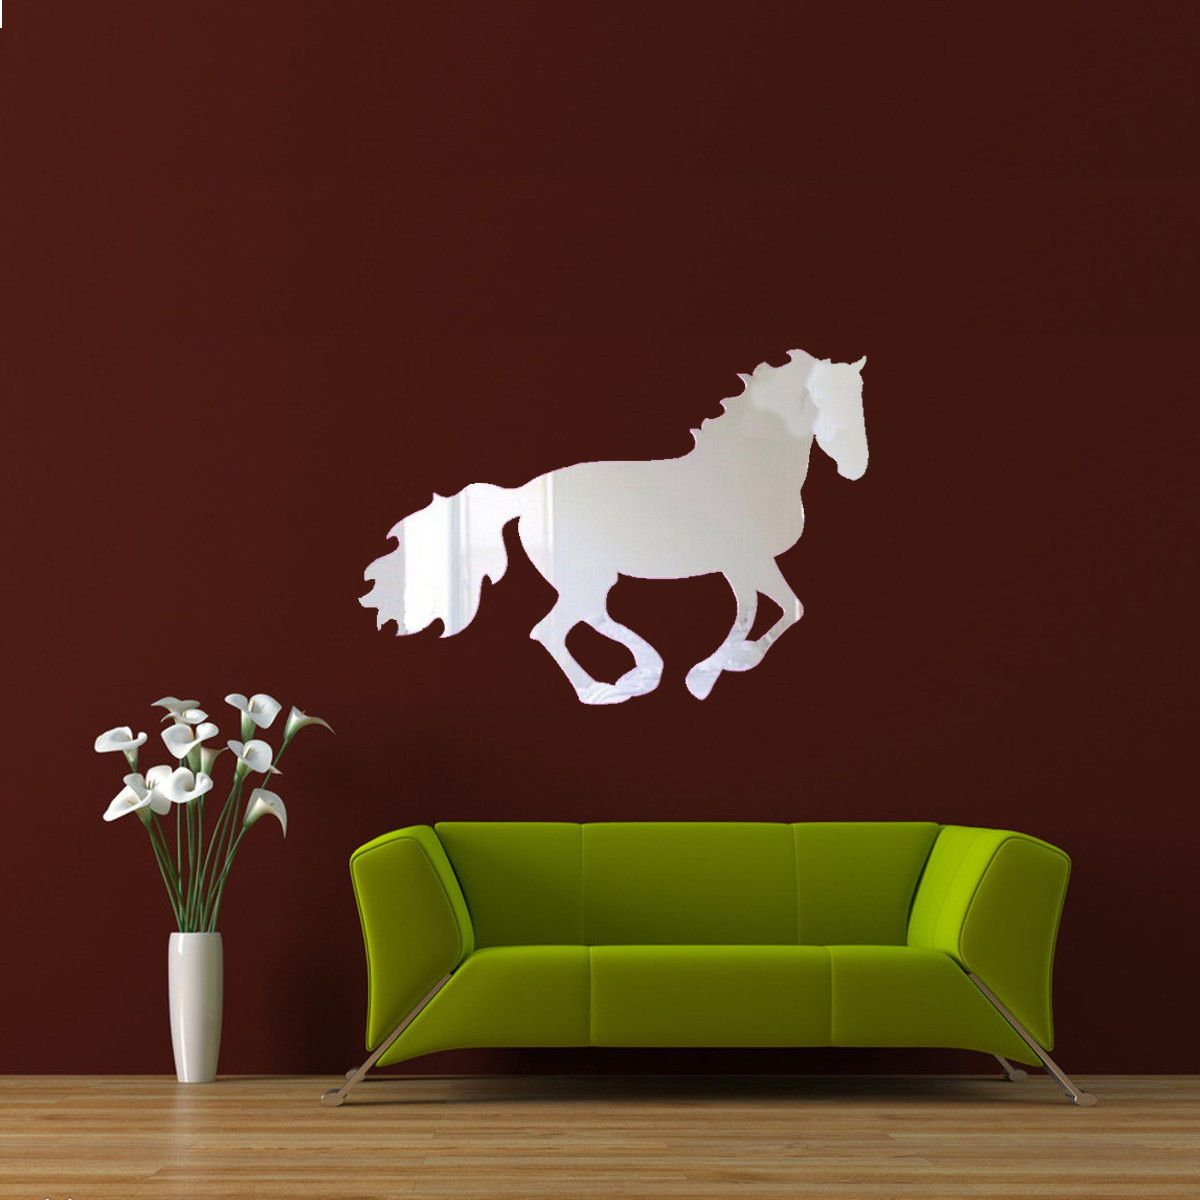 D acrylic mirror running horse wall sticker decal home office diy